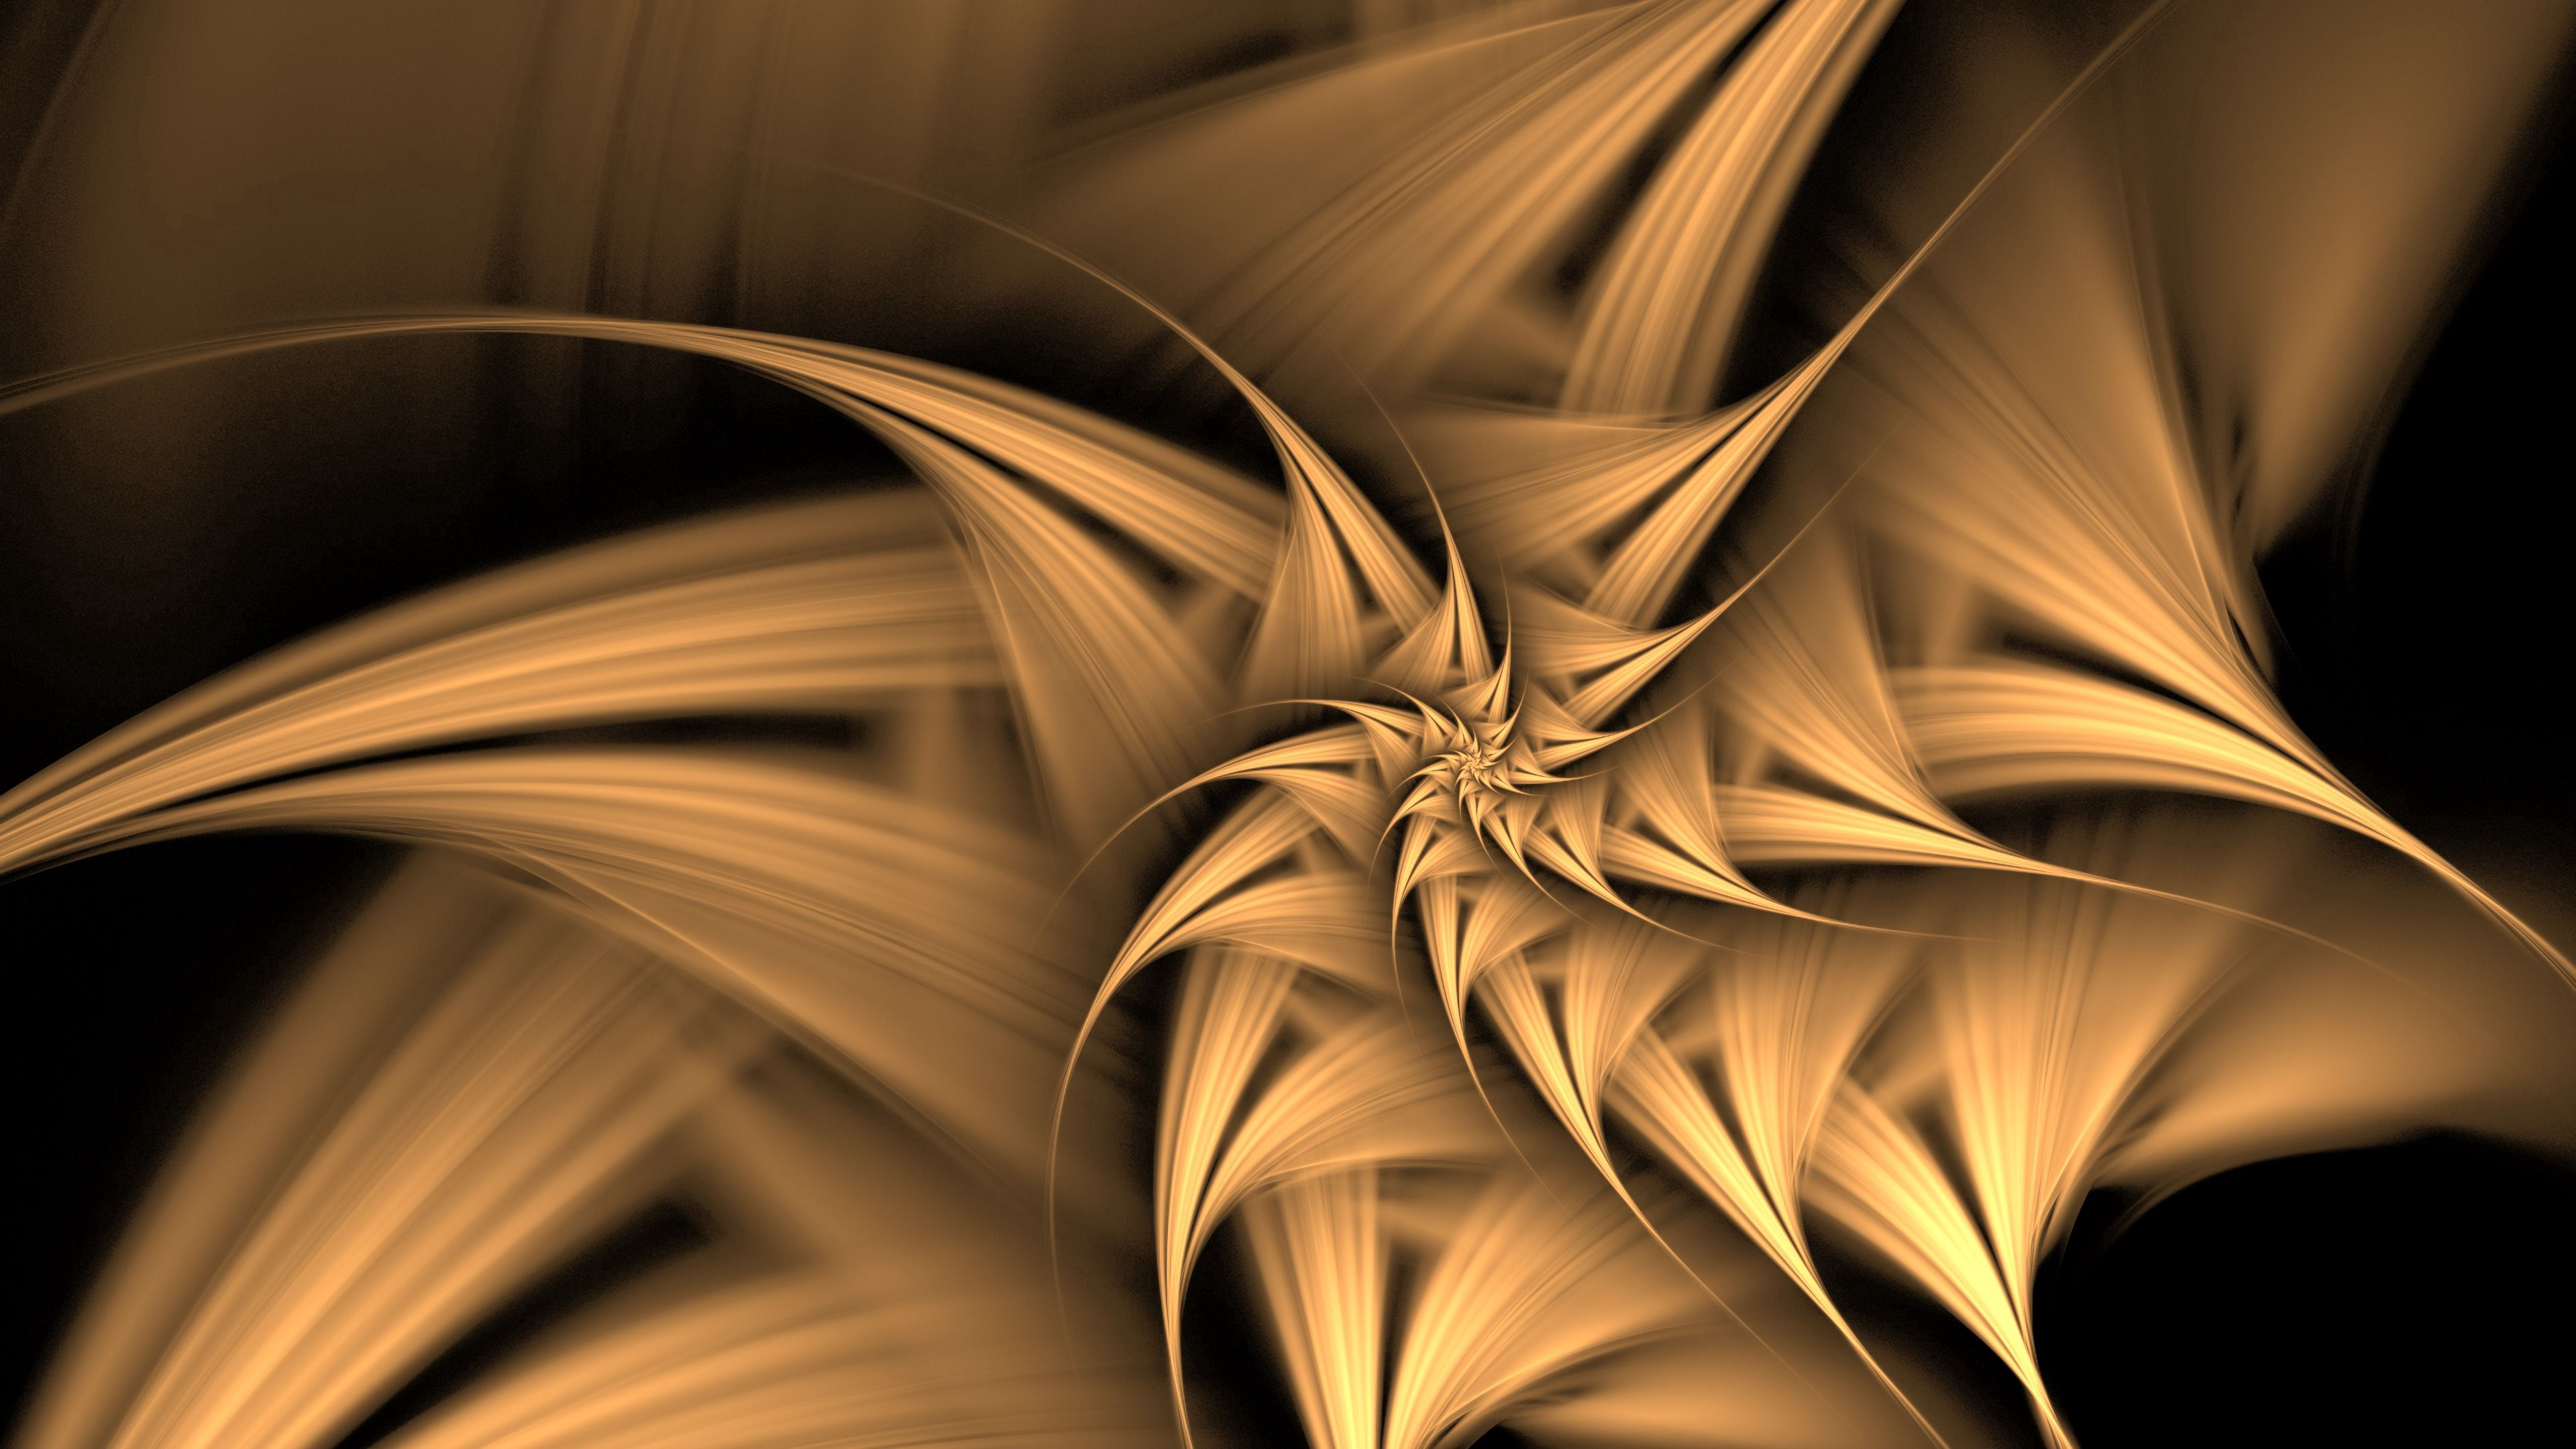 79164 download wallpaper Abstract, Fractal, Swirling, Involute, Pointed, Digital screensavers and pictures for free